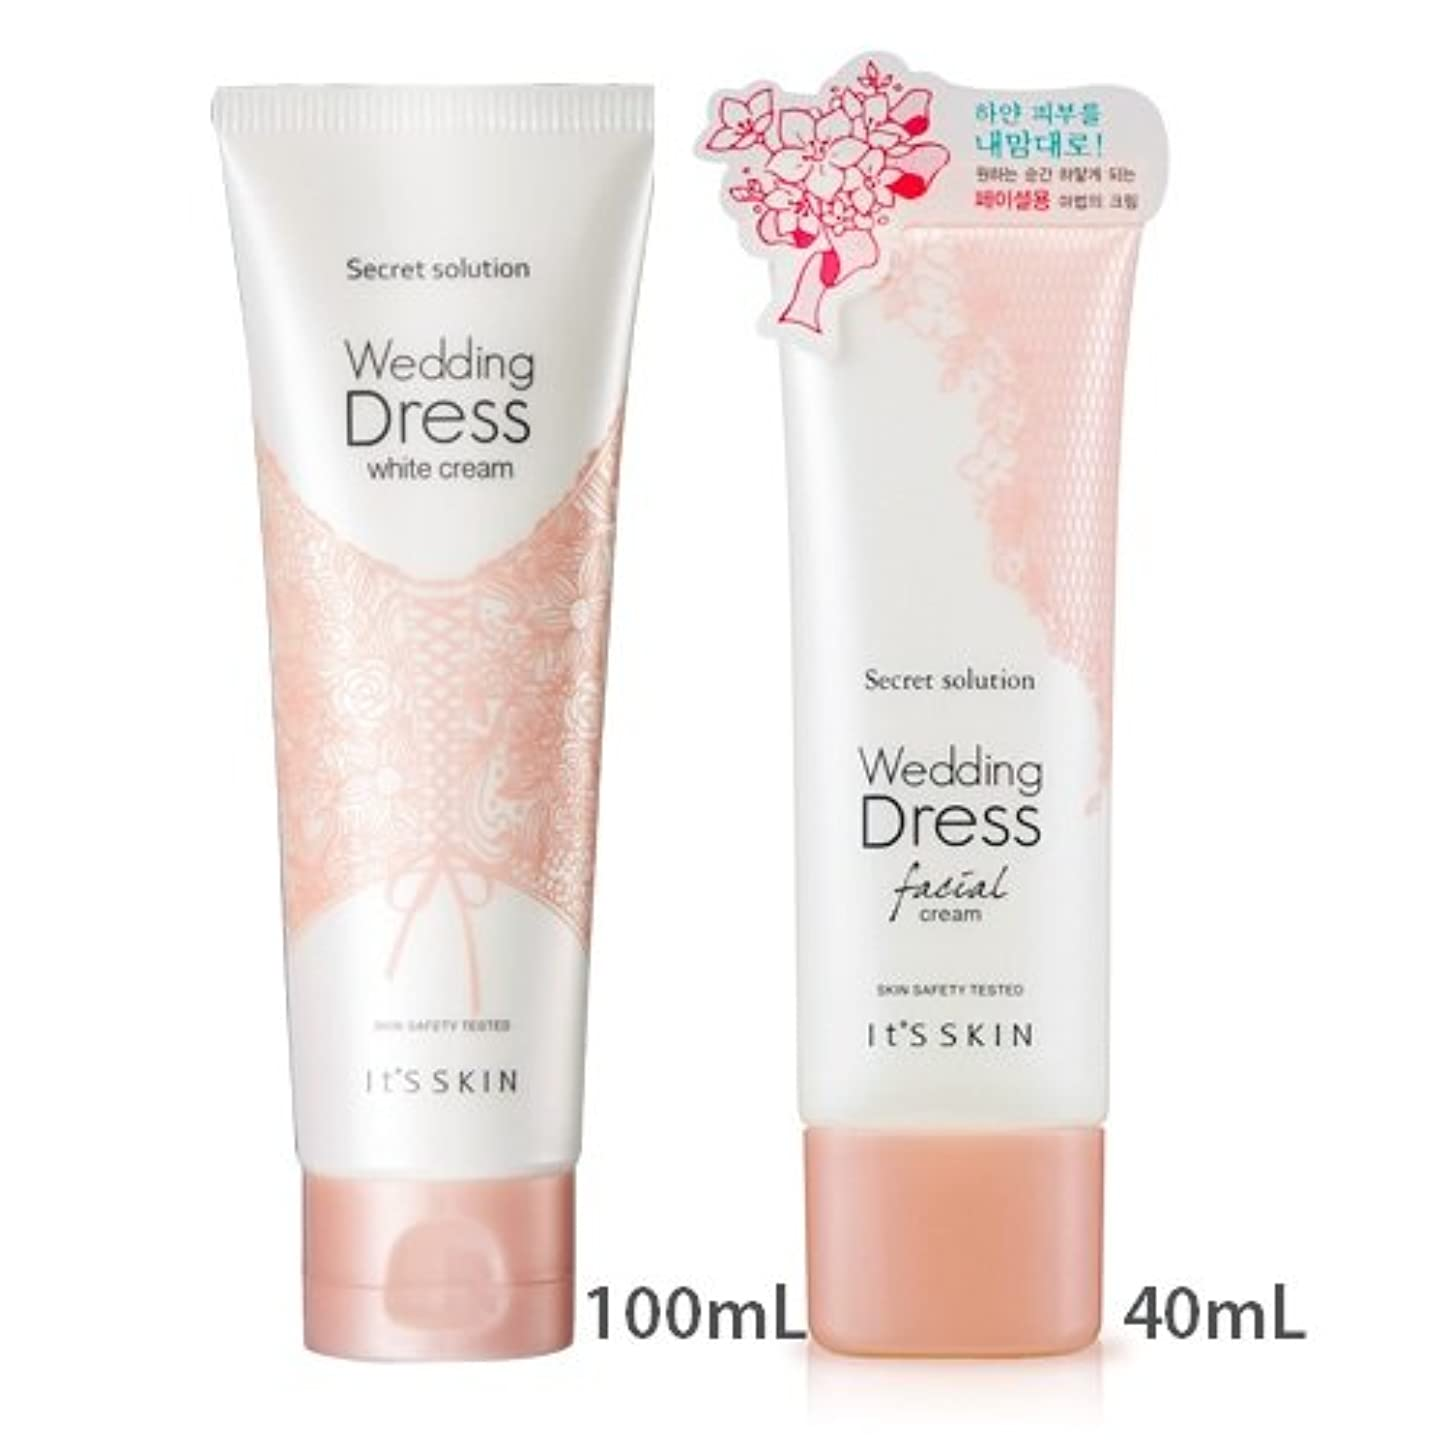 ジュースヒョウマリナー[1+1] It's skin Secret Solution Wedding Dress Facial Cream 40mL + Secret Solution Wedding Dress Cream 100mL イッツスキン...